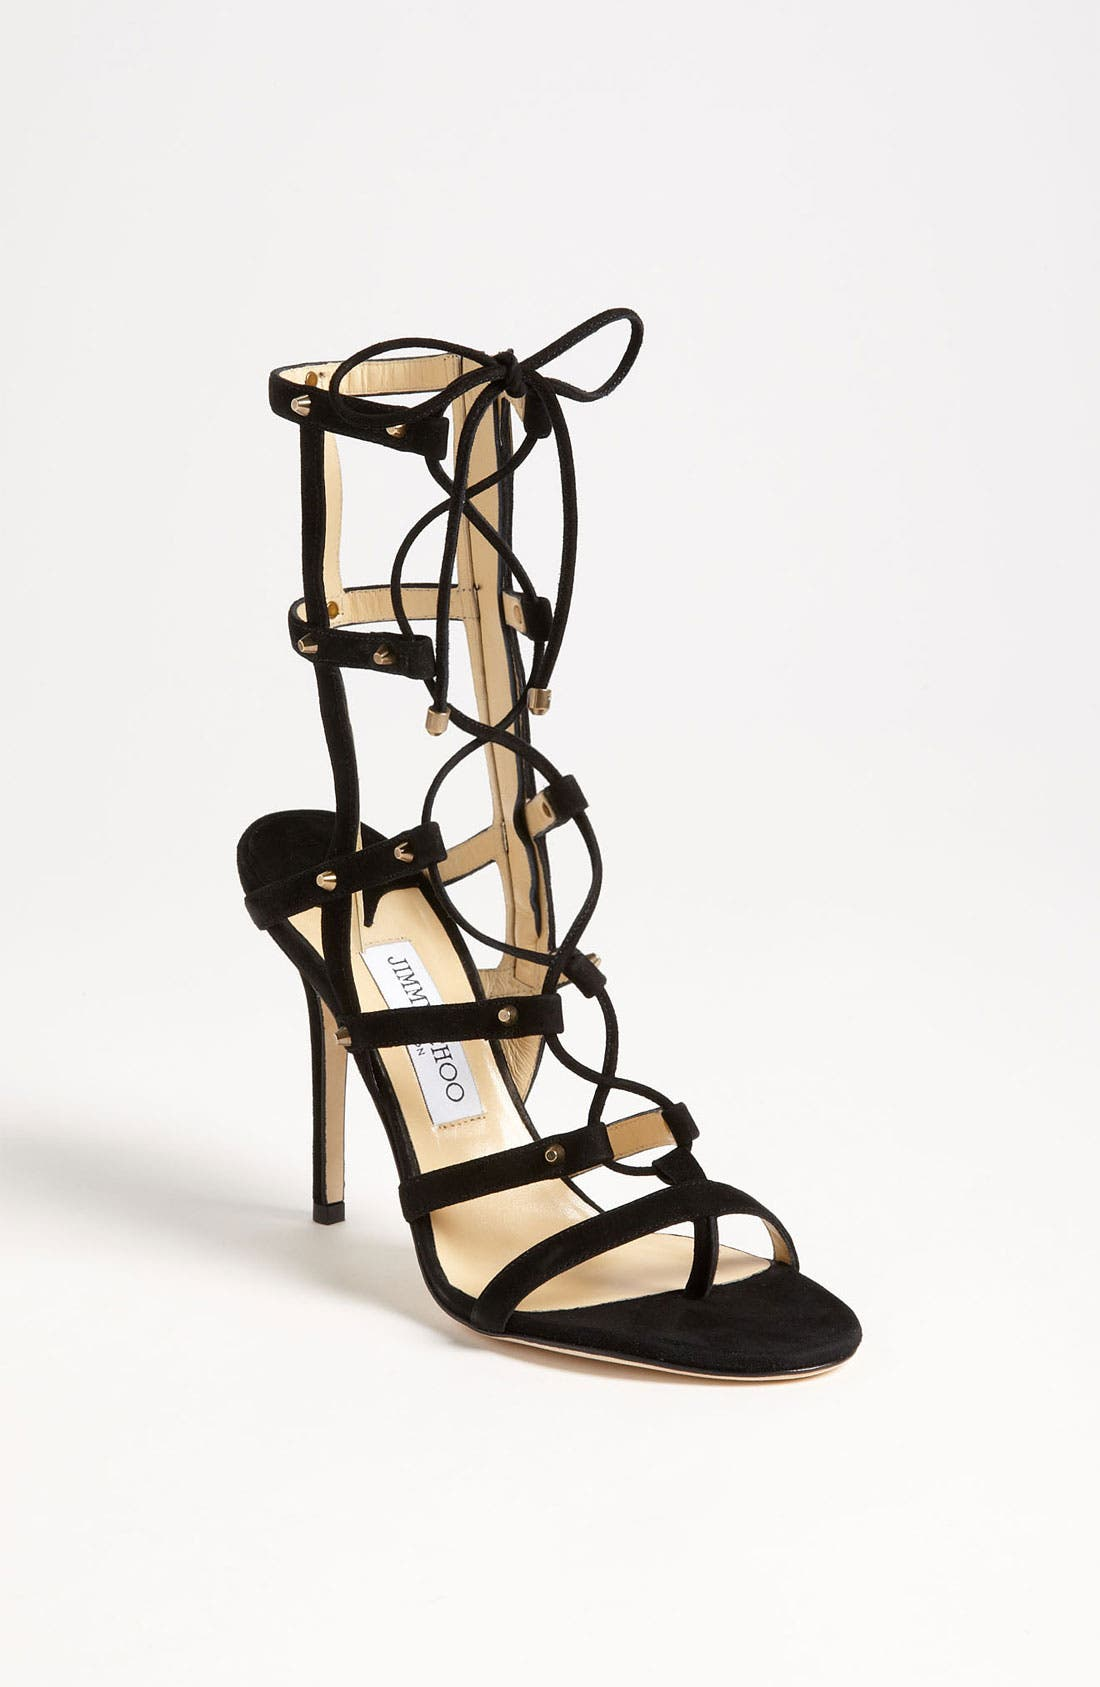 Alternate Image 1 Selected - Jimmy Choo 'Meddle' Caged Sandal